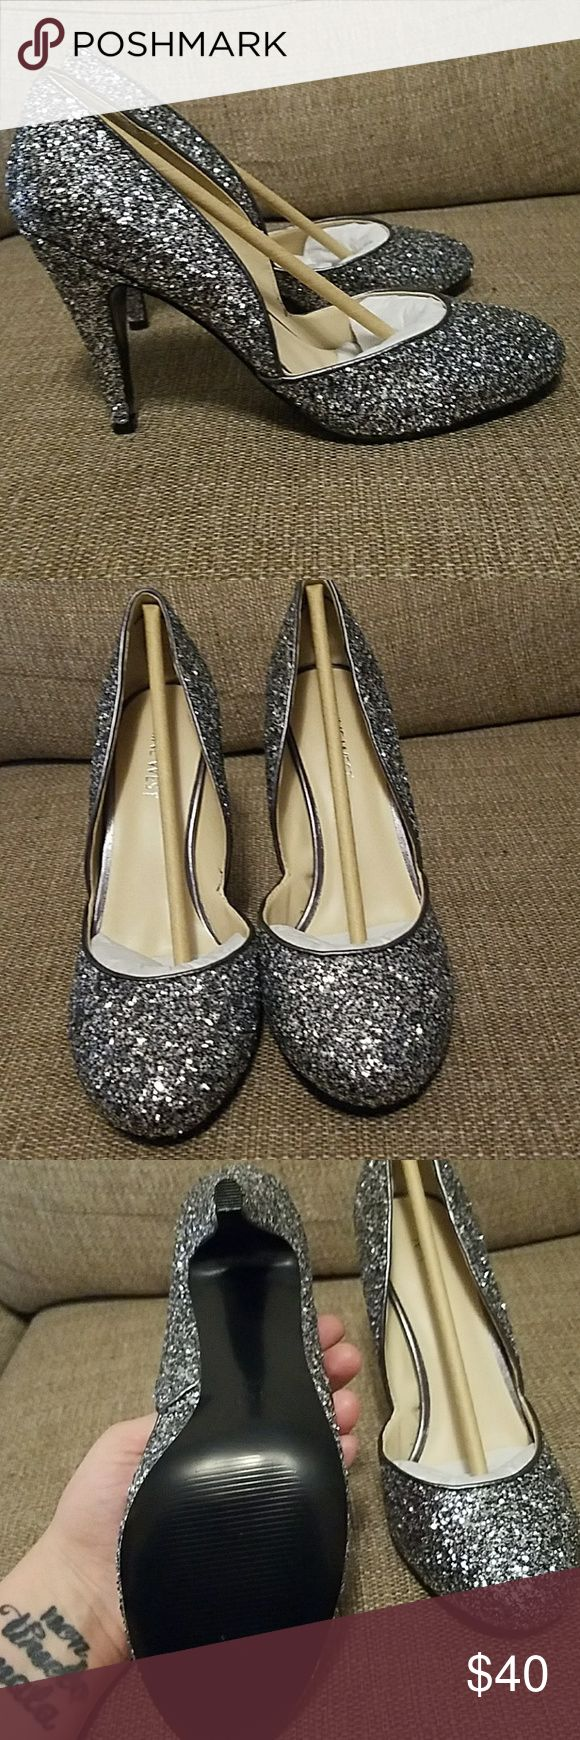 """NWOB Nine West silver glitter heels Very fun and flirty 4"""" silver glitter heels from Nine West. Never worn, I wish I had an occasion to wear them! These are perfect for a party or everyday for the bold! No box, I live in a one bedroom apartment and threw out the box to save space. I am also unsure if they are real leather or not. Nine West Shoes Heels"""